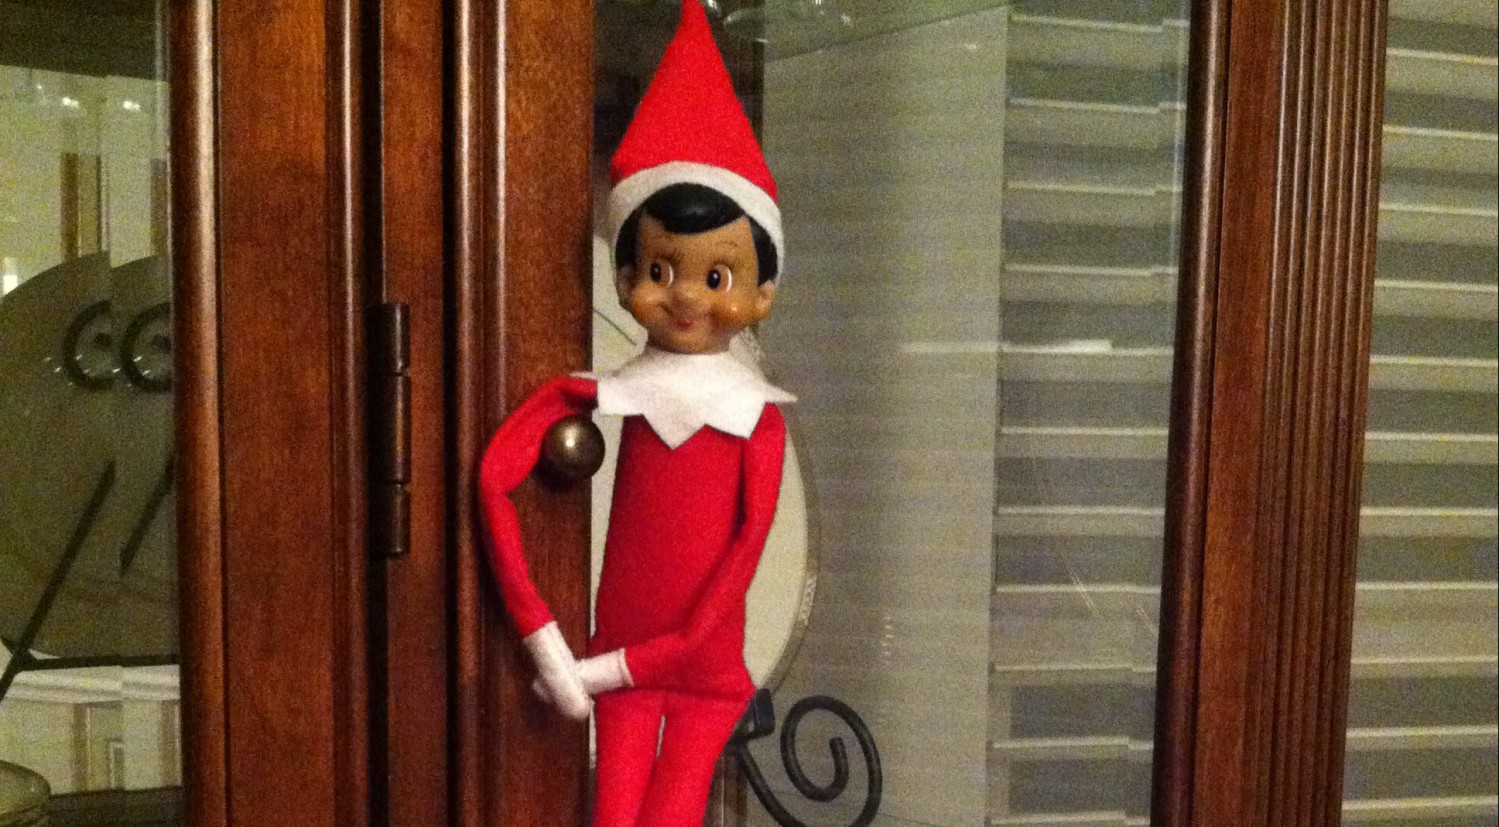 Man Offers Living Elf On The Shelf Services On